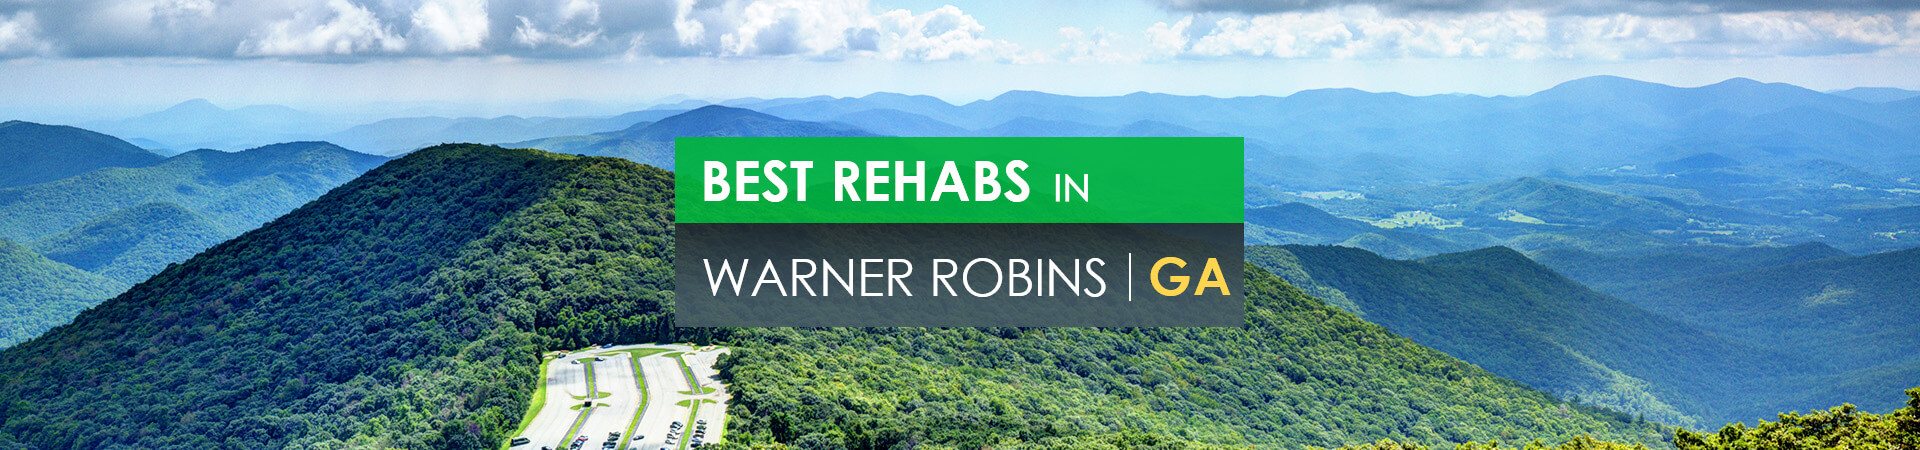 Best rehabs in Warner Robins, GA